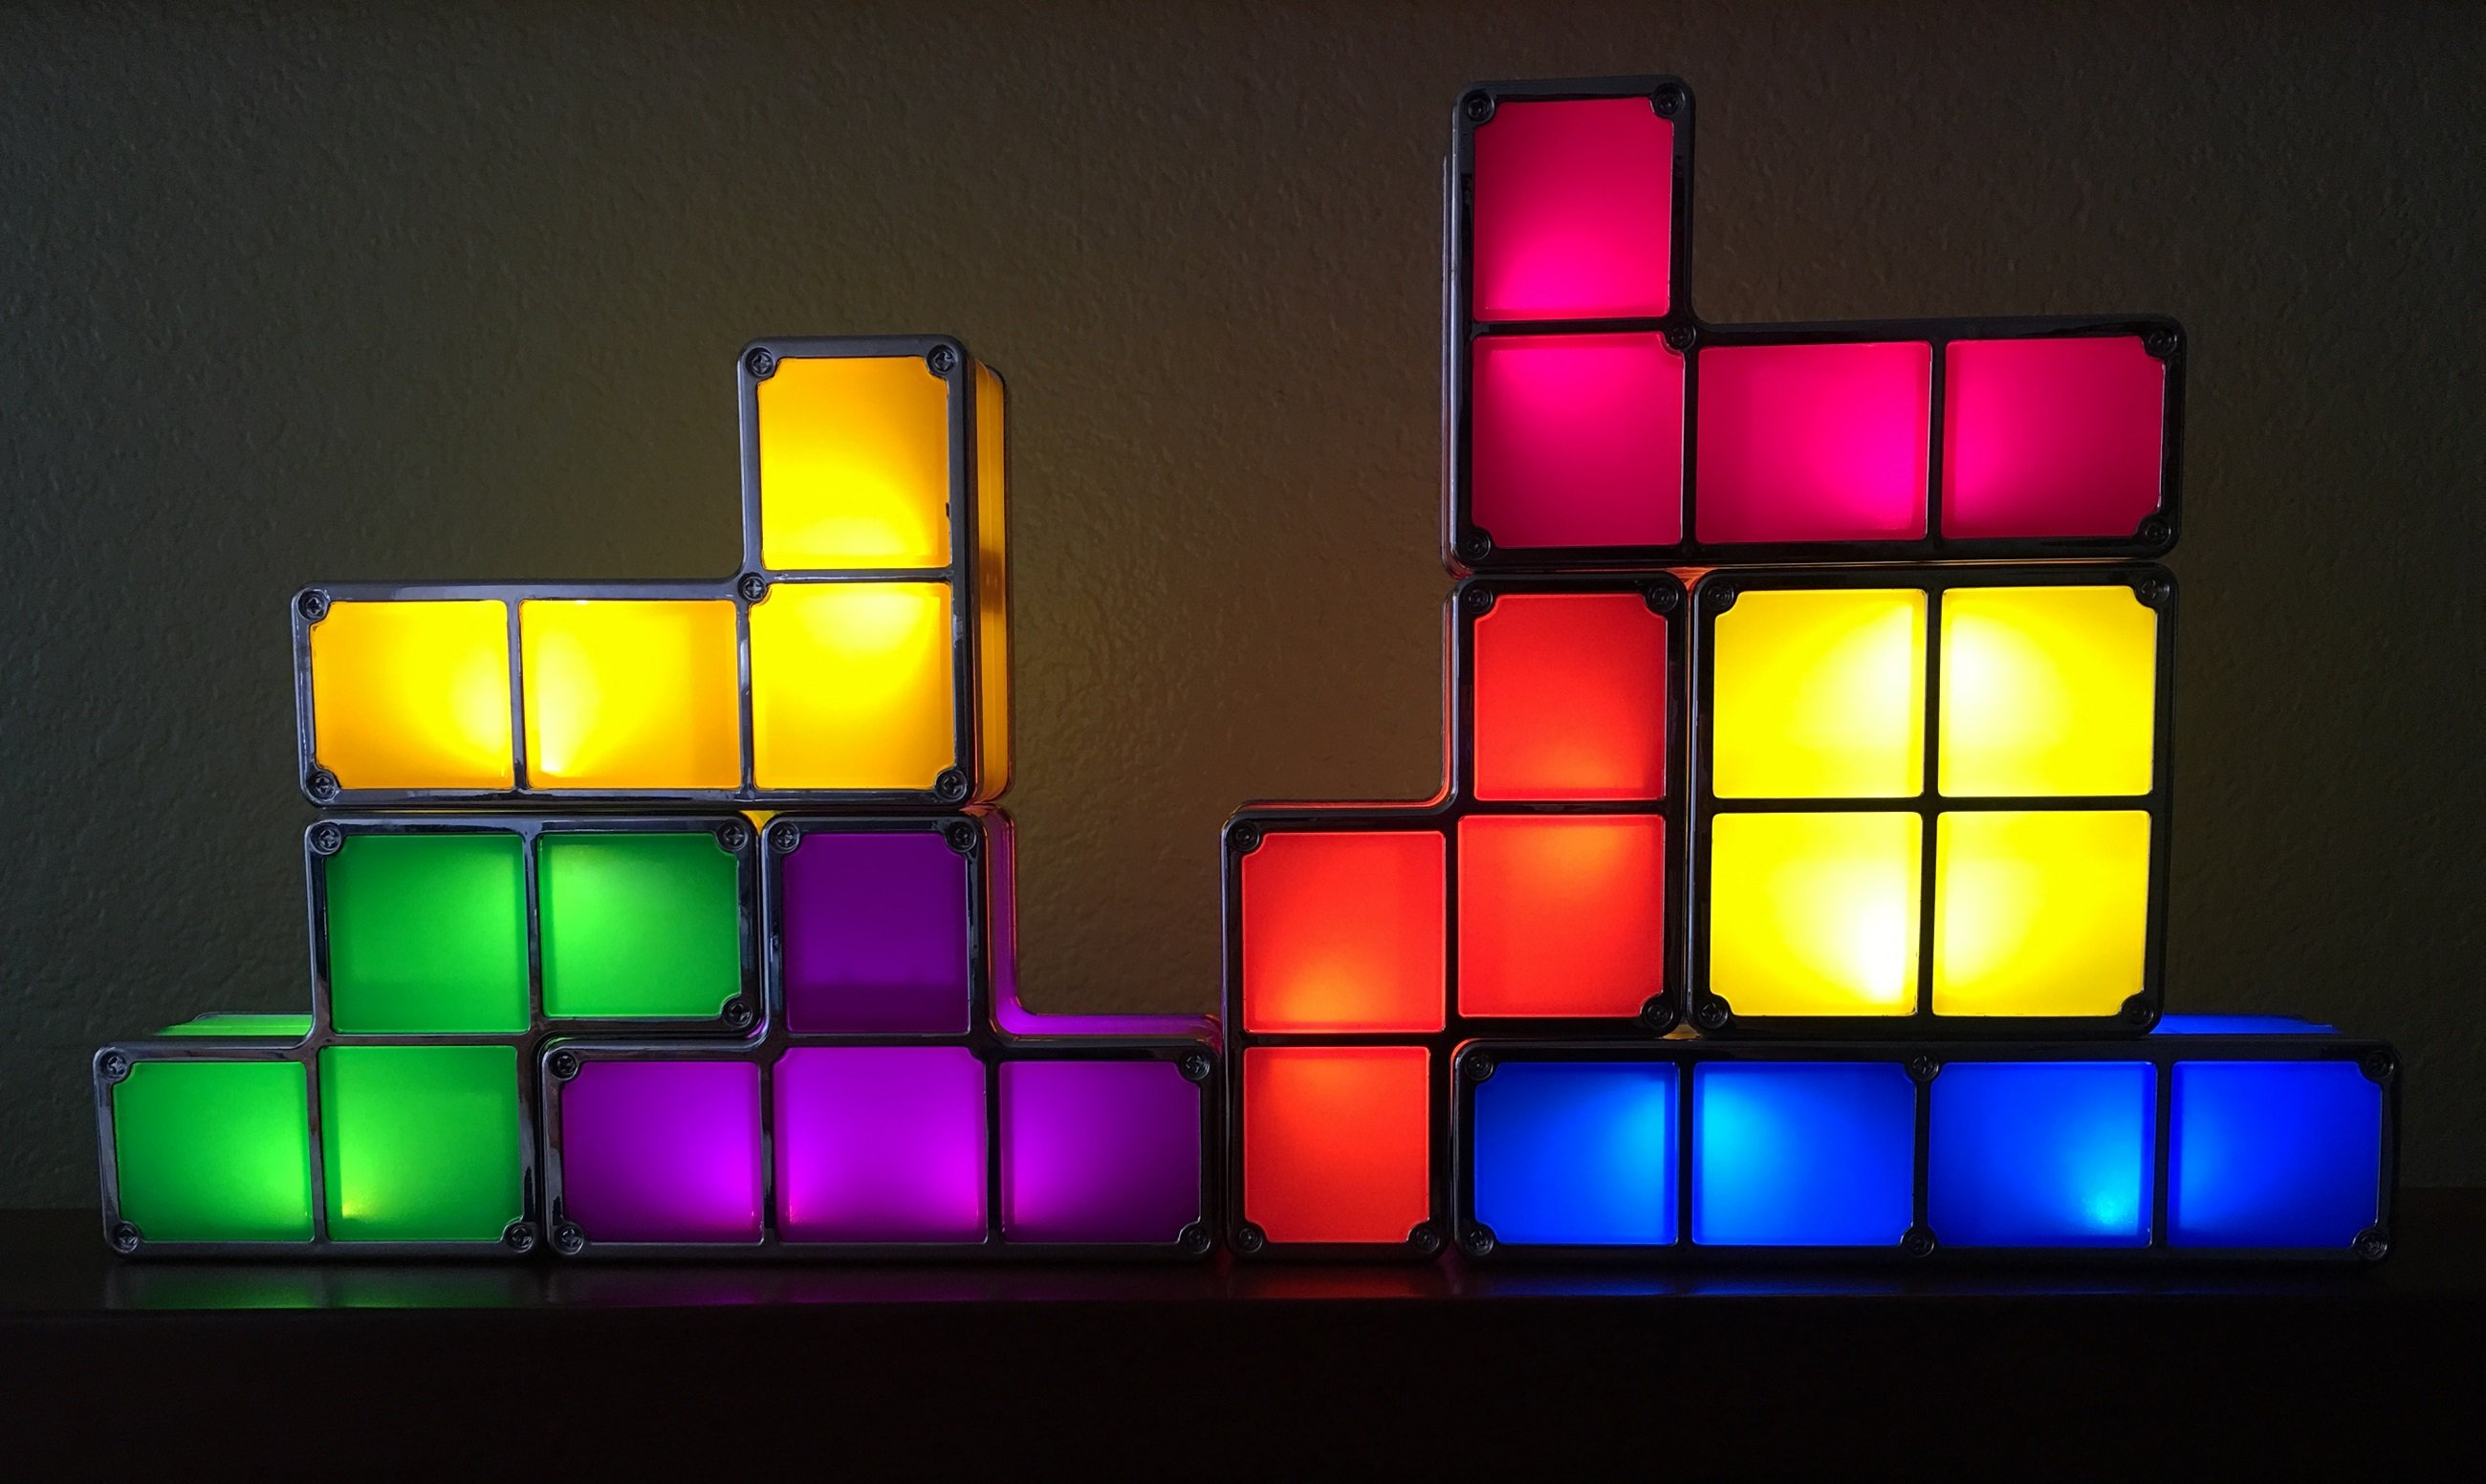 The Life Lessons of Tetris